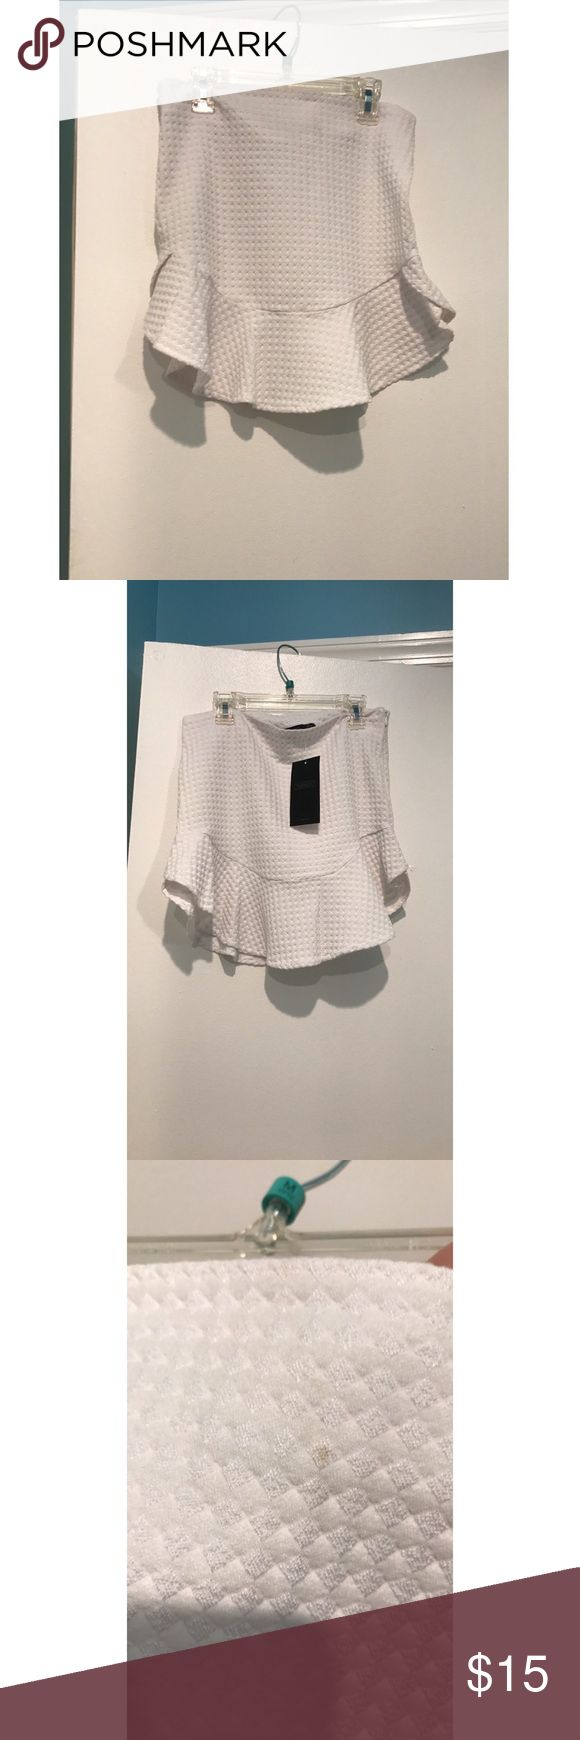 Trafaluc Zara white mini skirt Brand new White mini skirt. There is a small stain on the back as shown in the picture. There is a zipper on the side. Trafaluc Skirts Mini